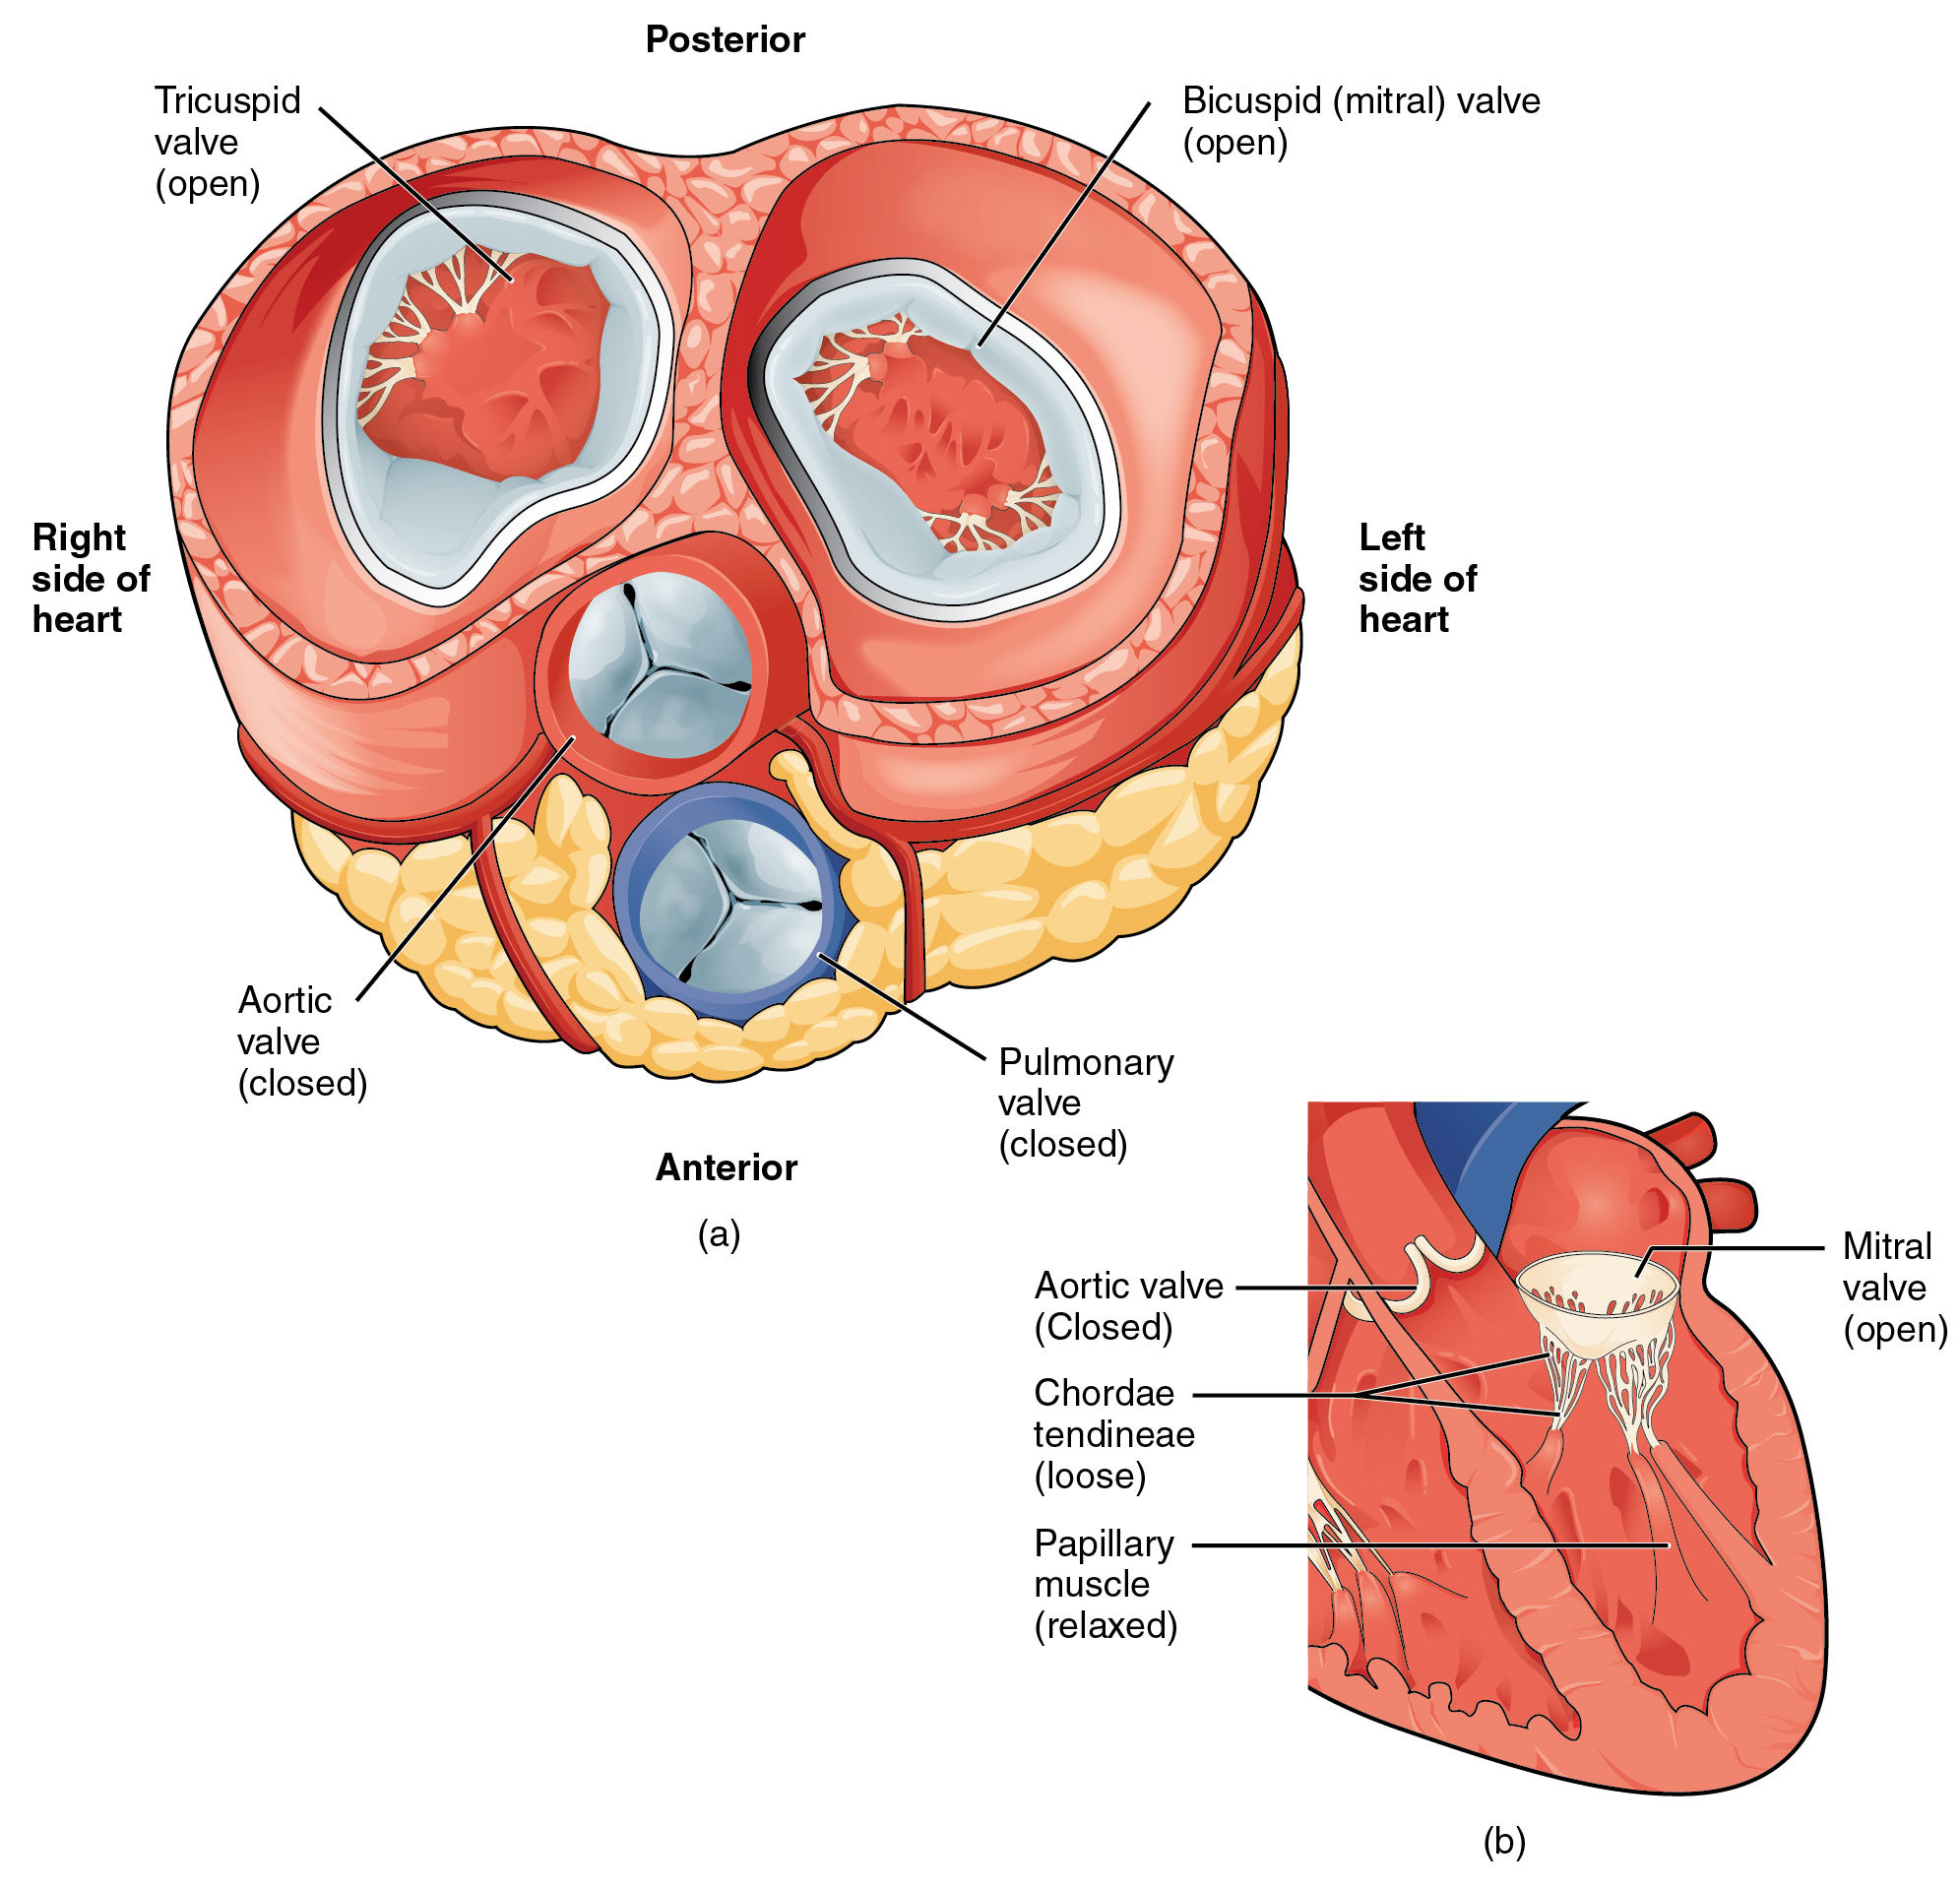 The left panel of this figure shows the anterior view of the heart with the different valves, and the right panel of this figure shows the location of the mitral valve in the open position in the heart.